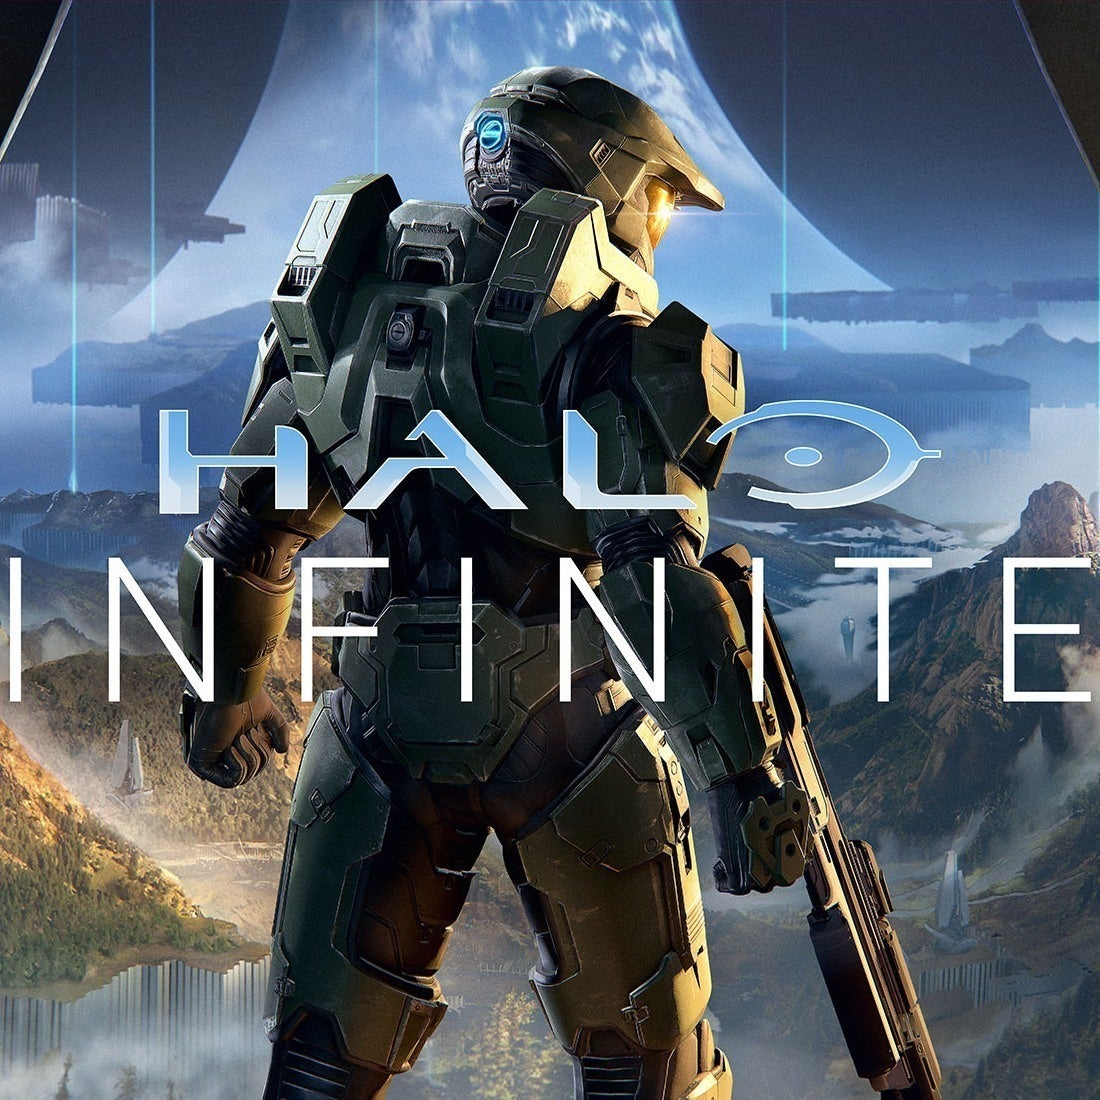 Halo Infinite E3 2019 Trailer Has A Secret Message From